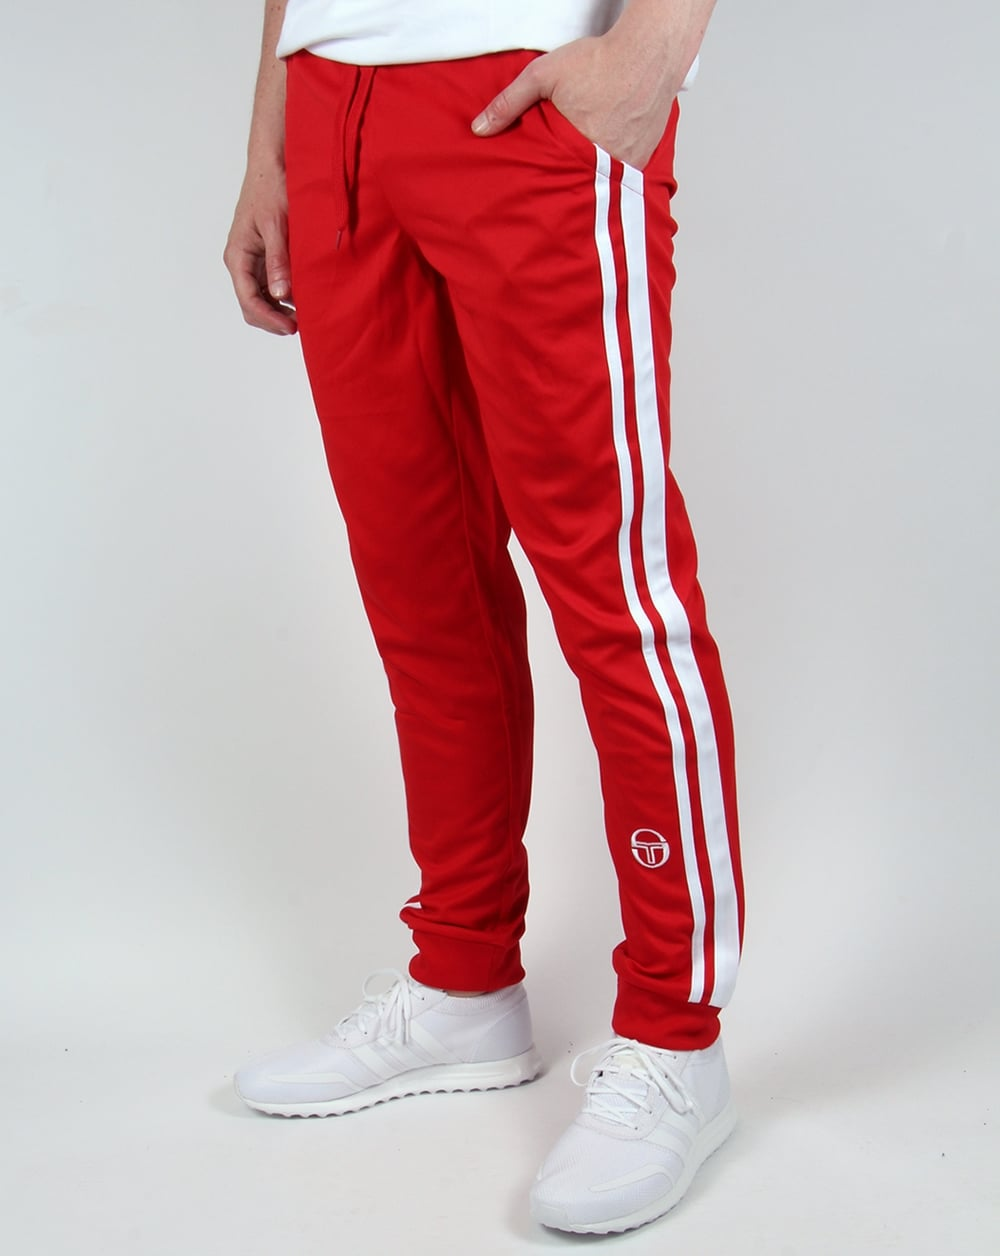 Sergio Tacchini Masters Track Bottoms Red White Pants